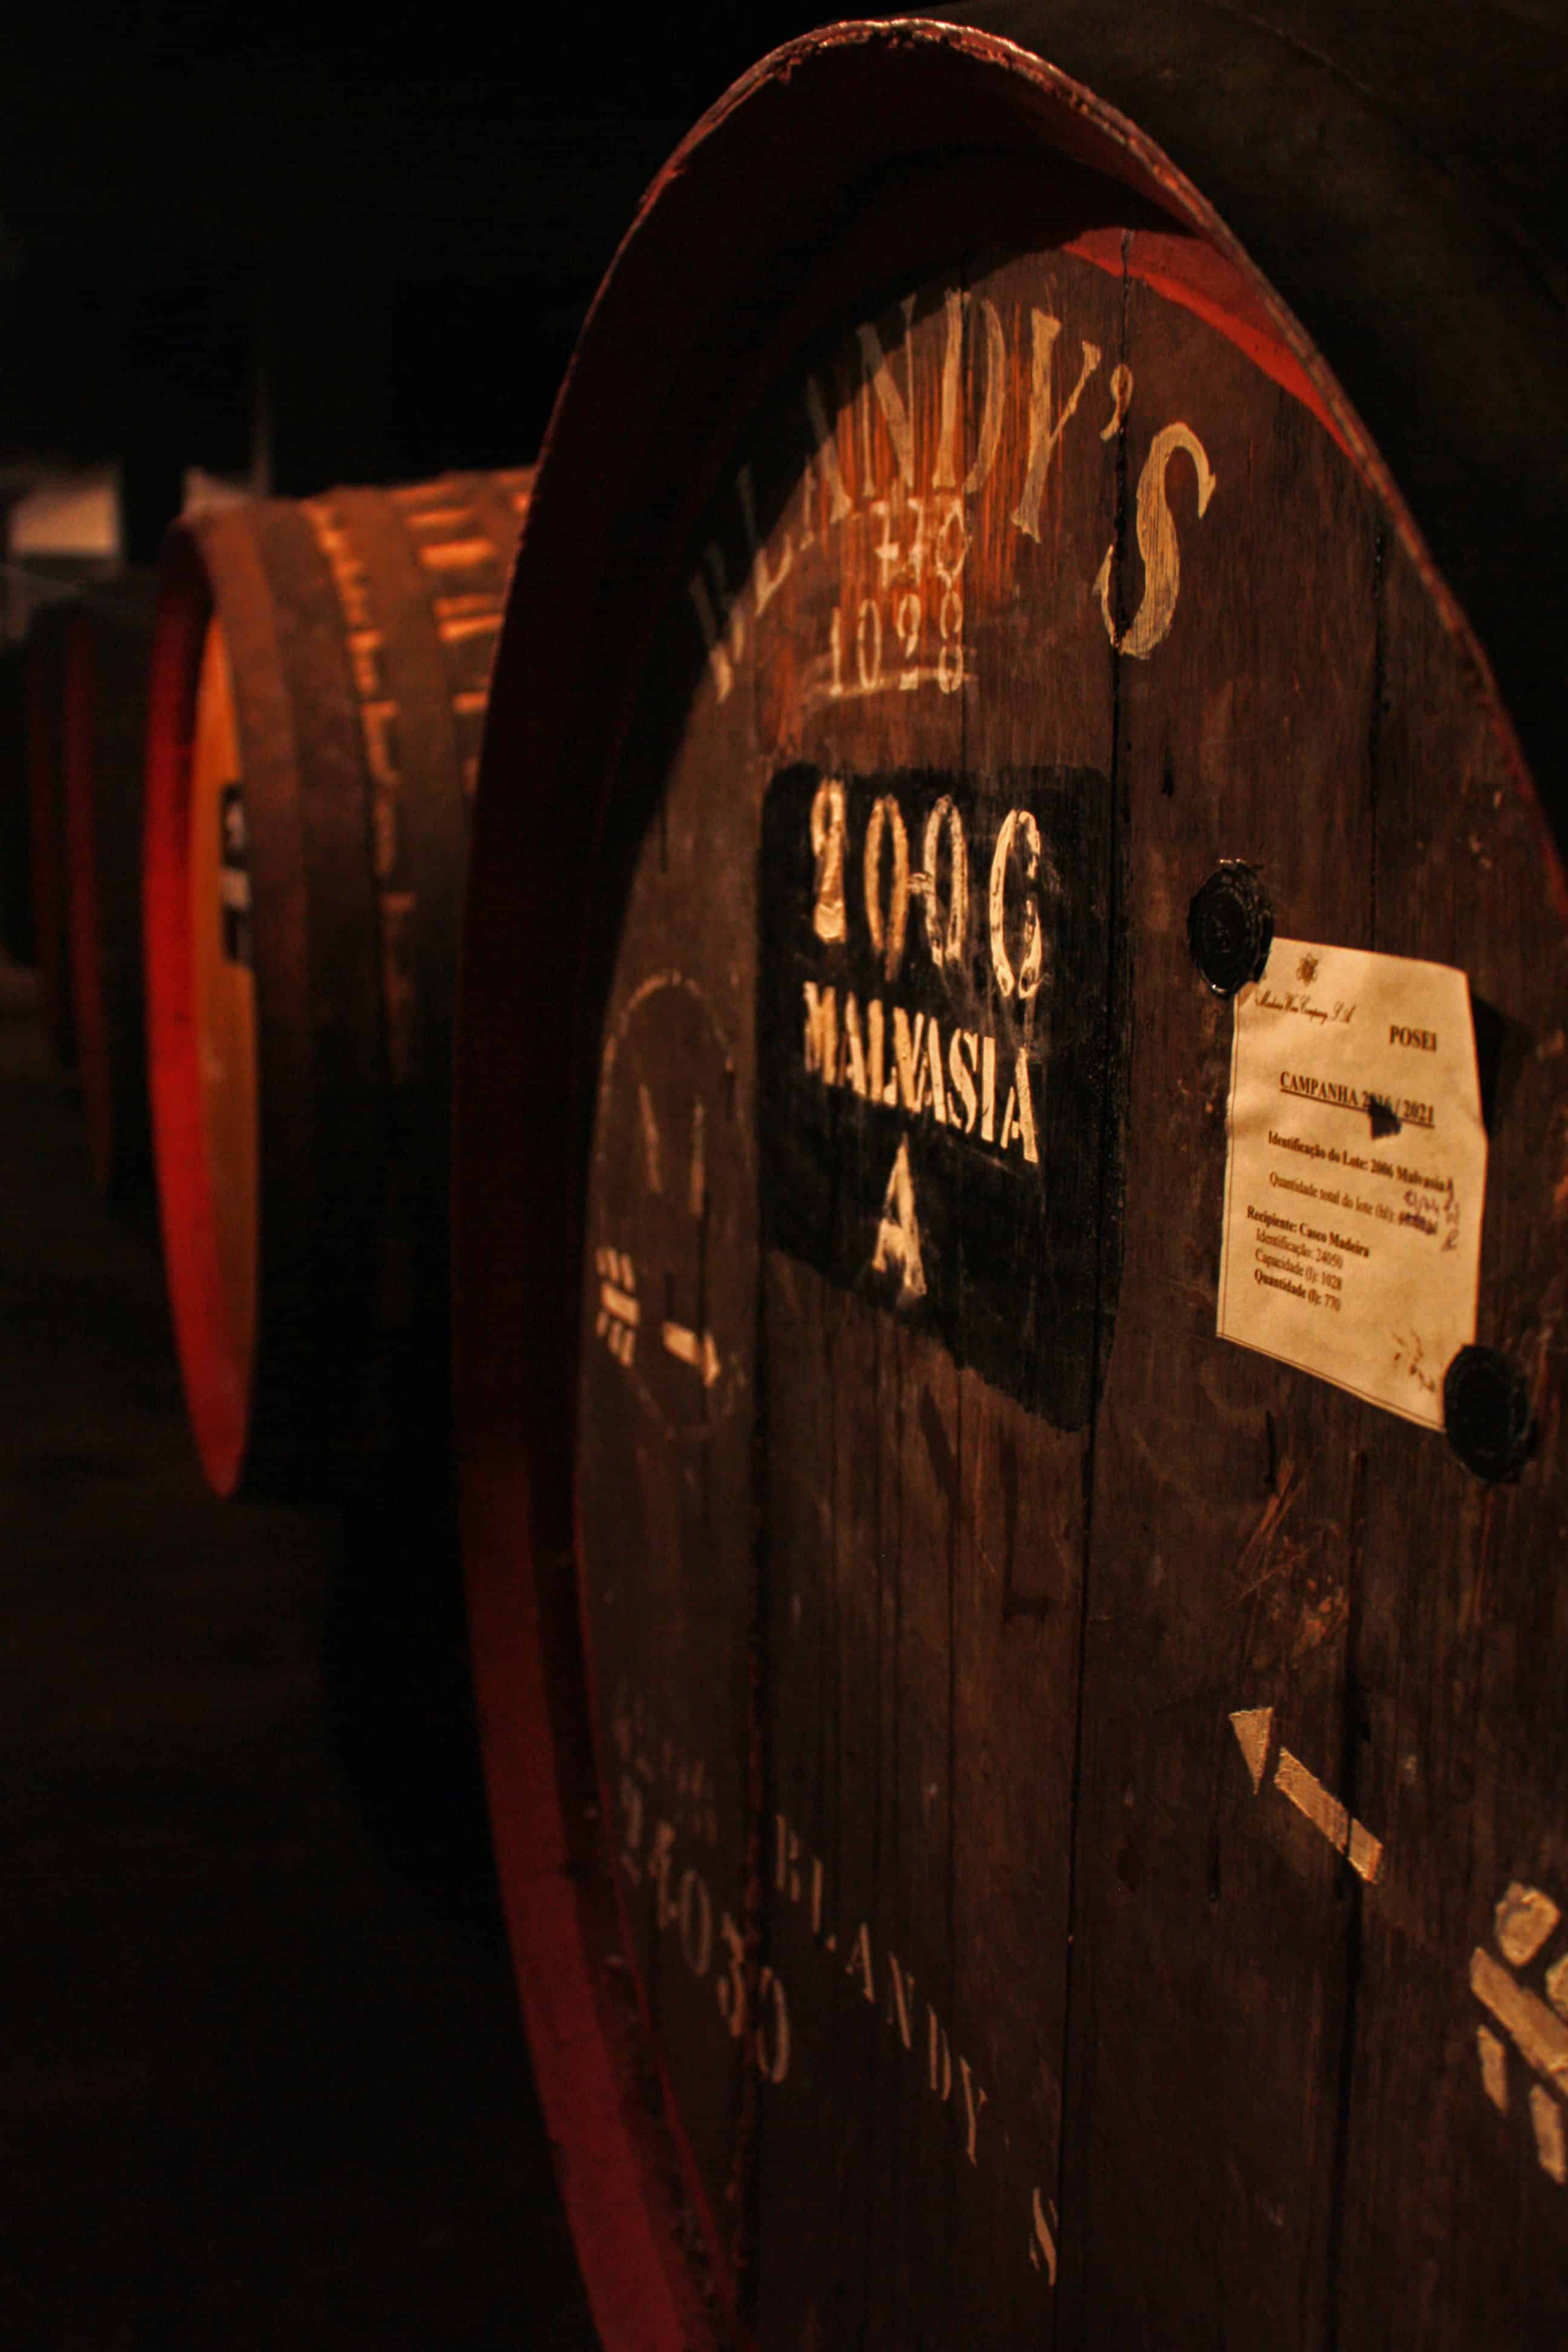 Blandy's Madeira wine barrels